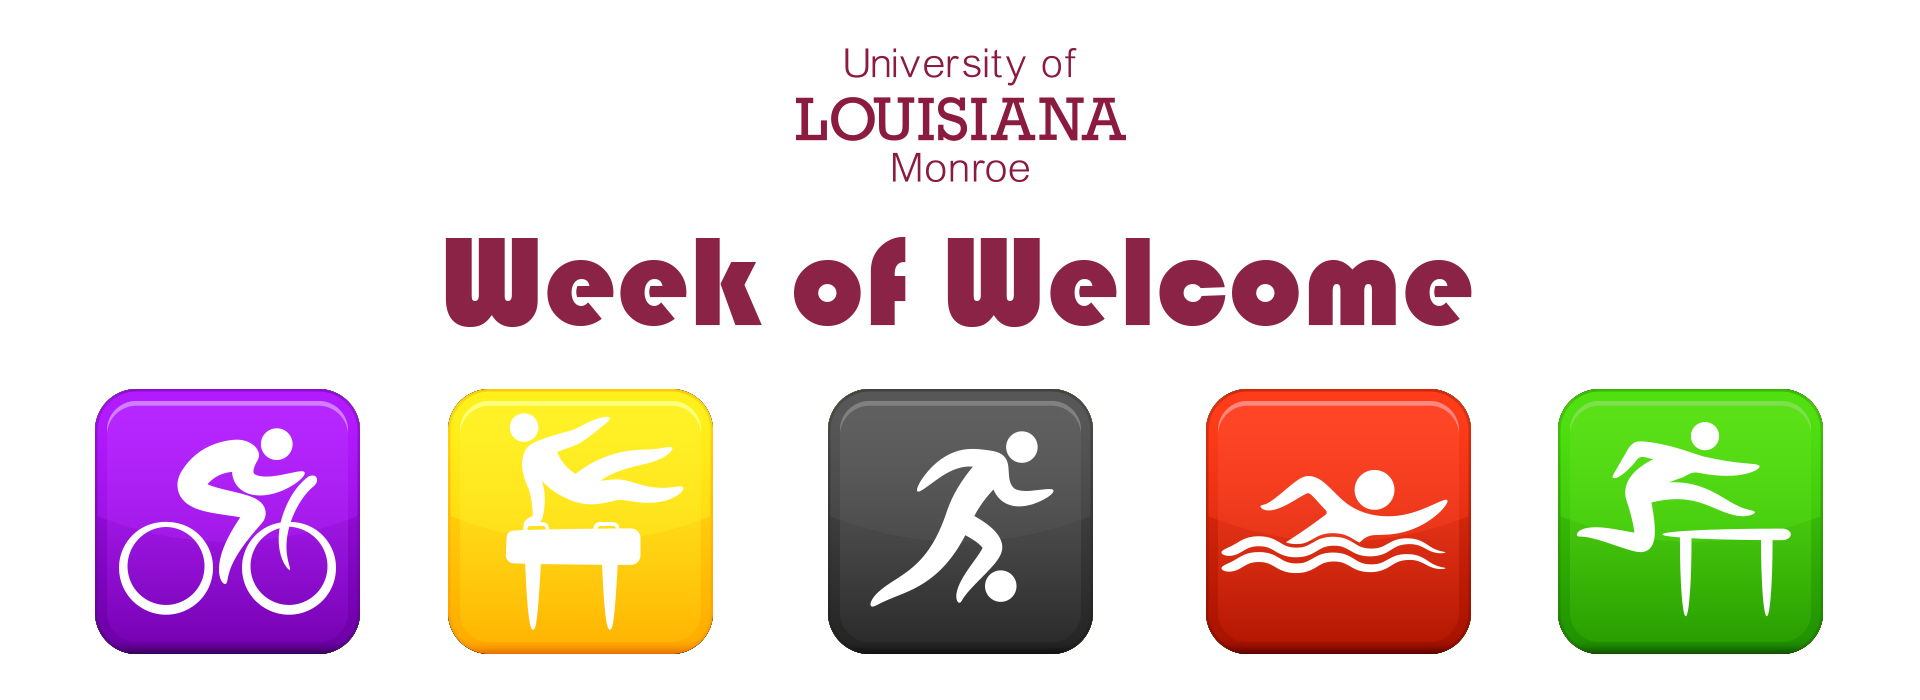 week of welcome 2016 banner ad